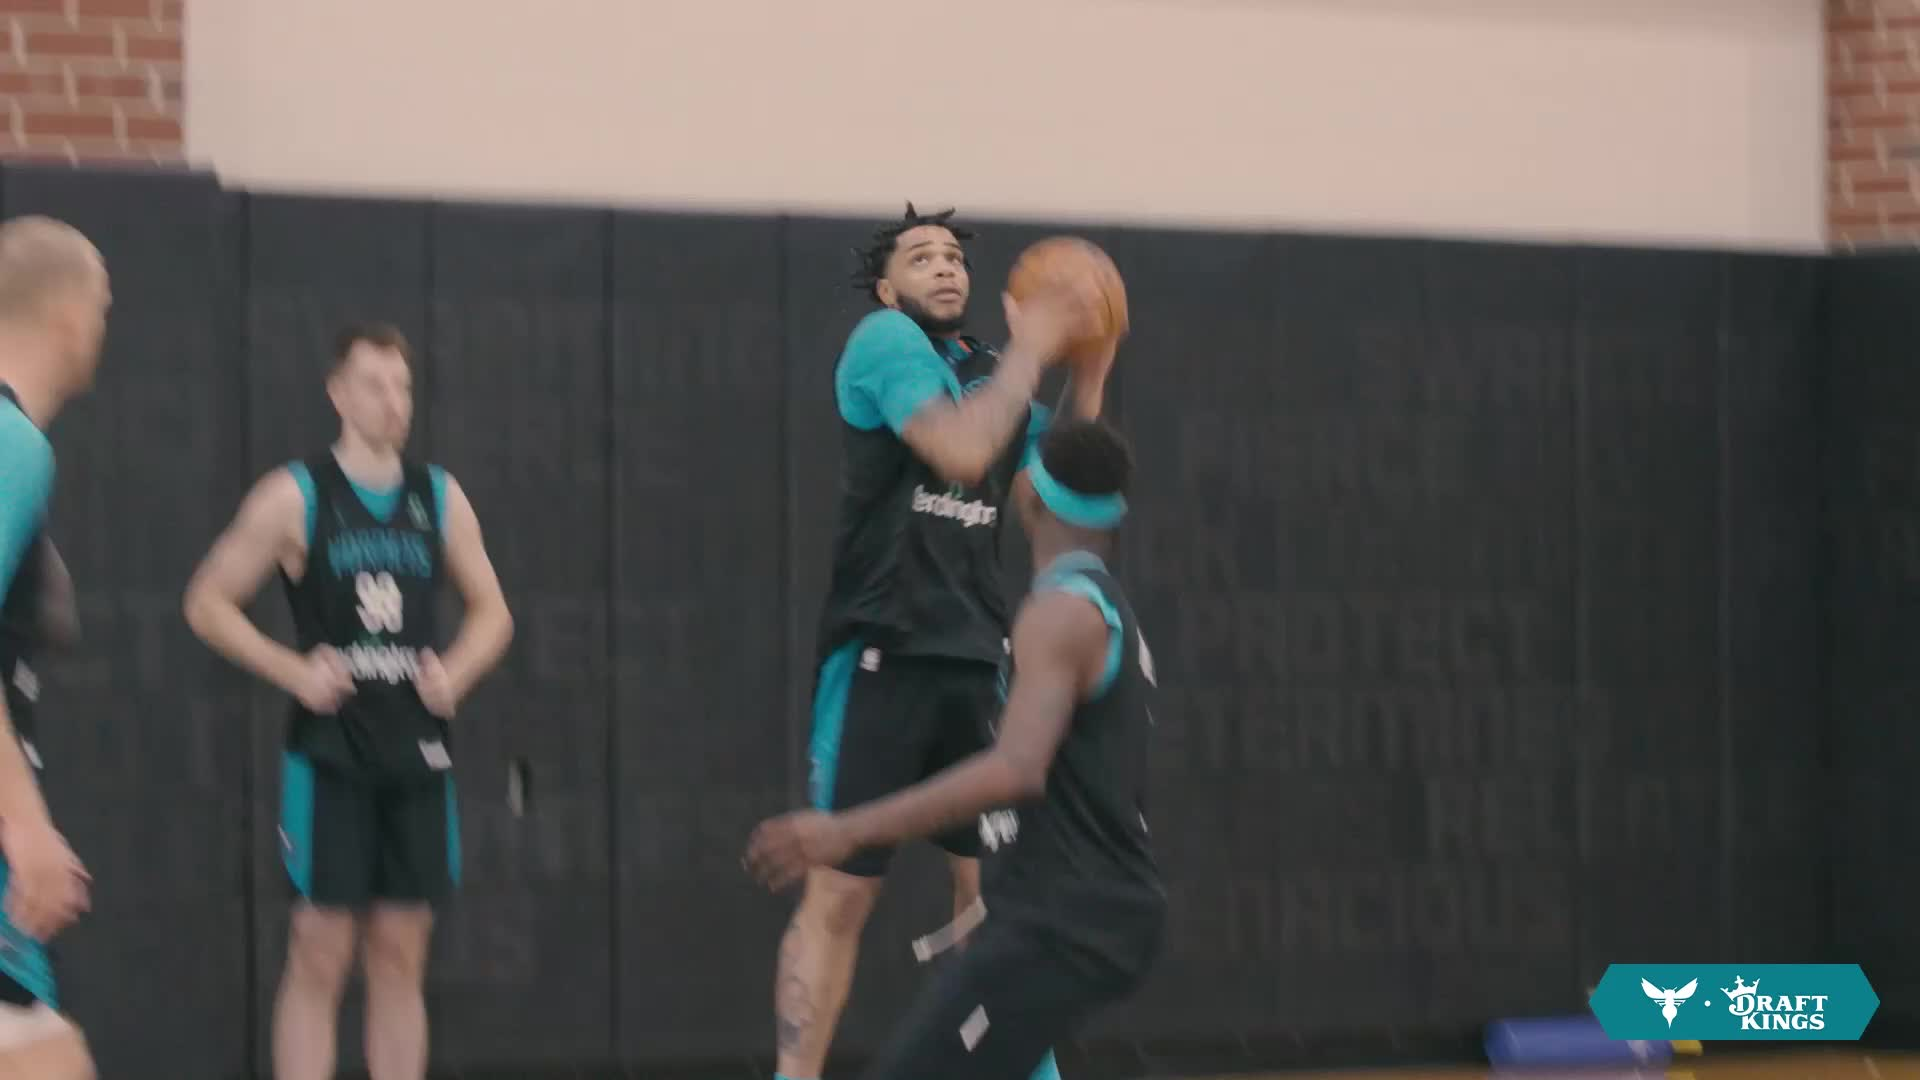 Miles Bridges Feeling It at Hornets Training Camp presented by DraftKings